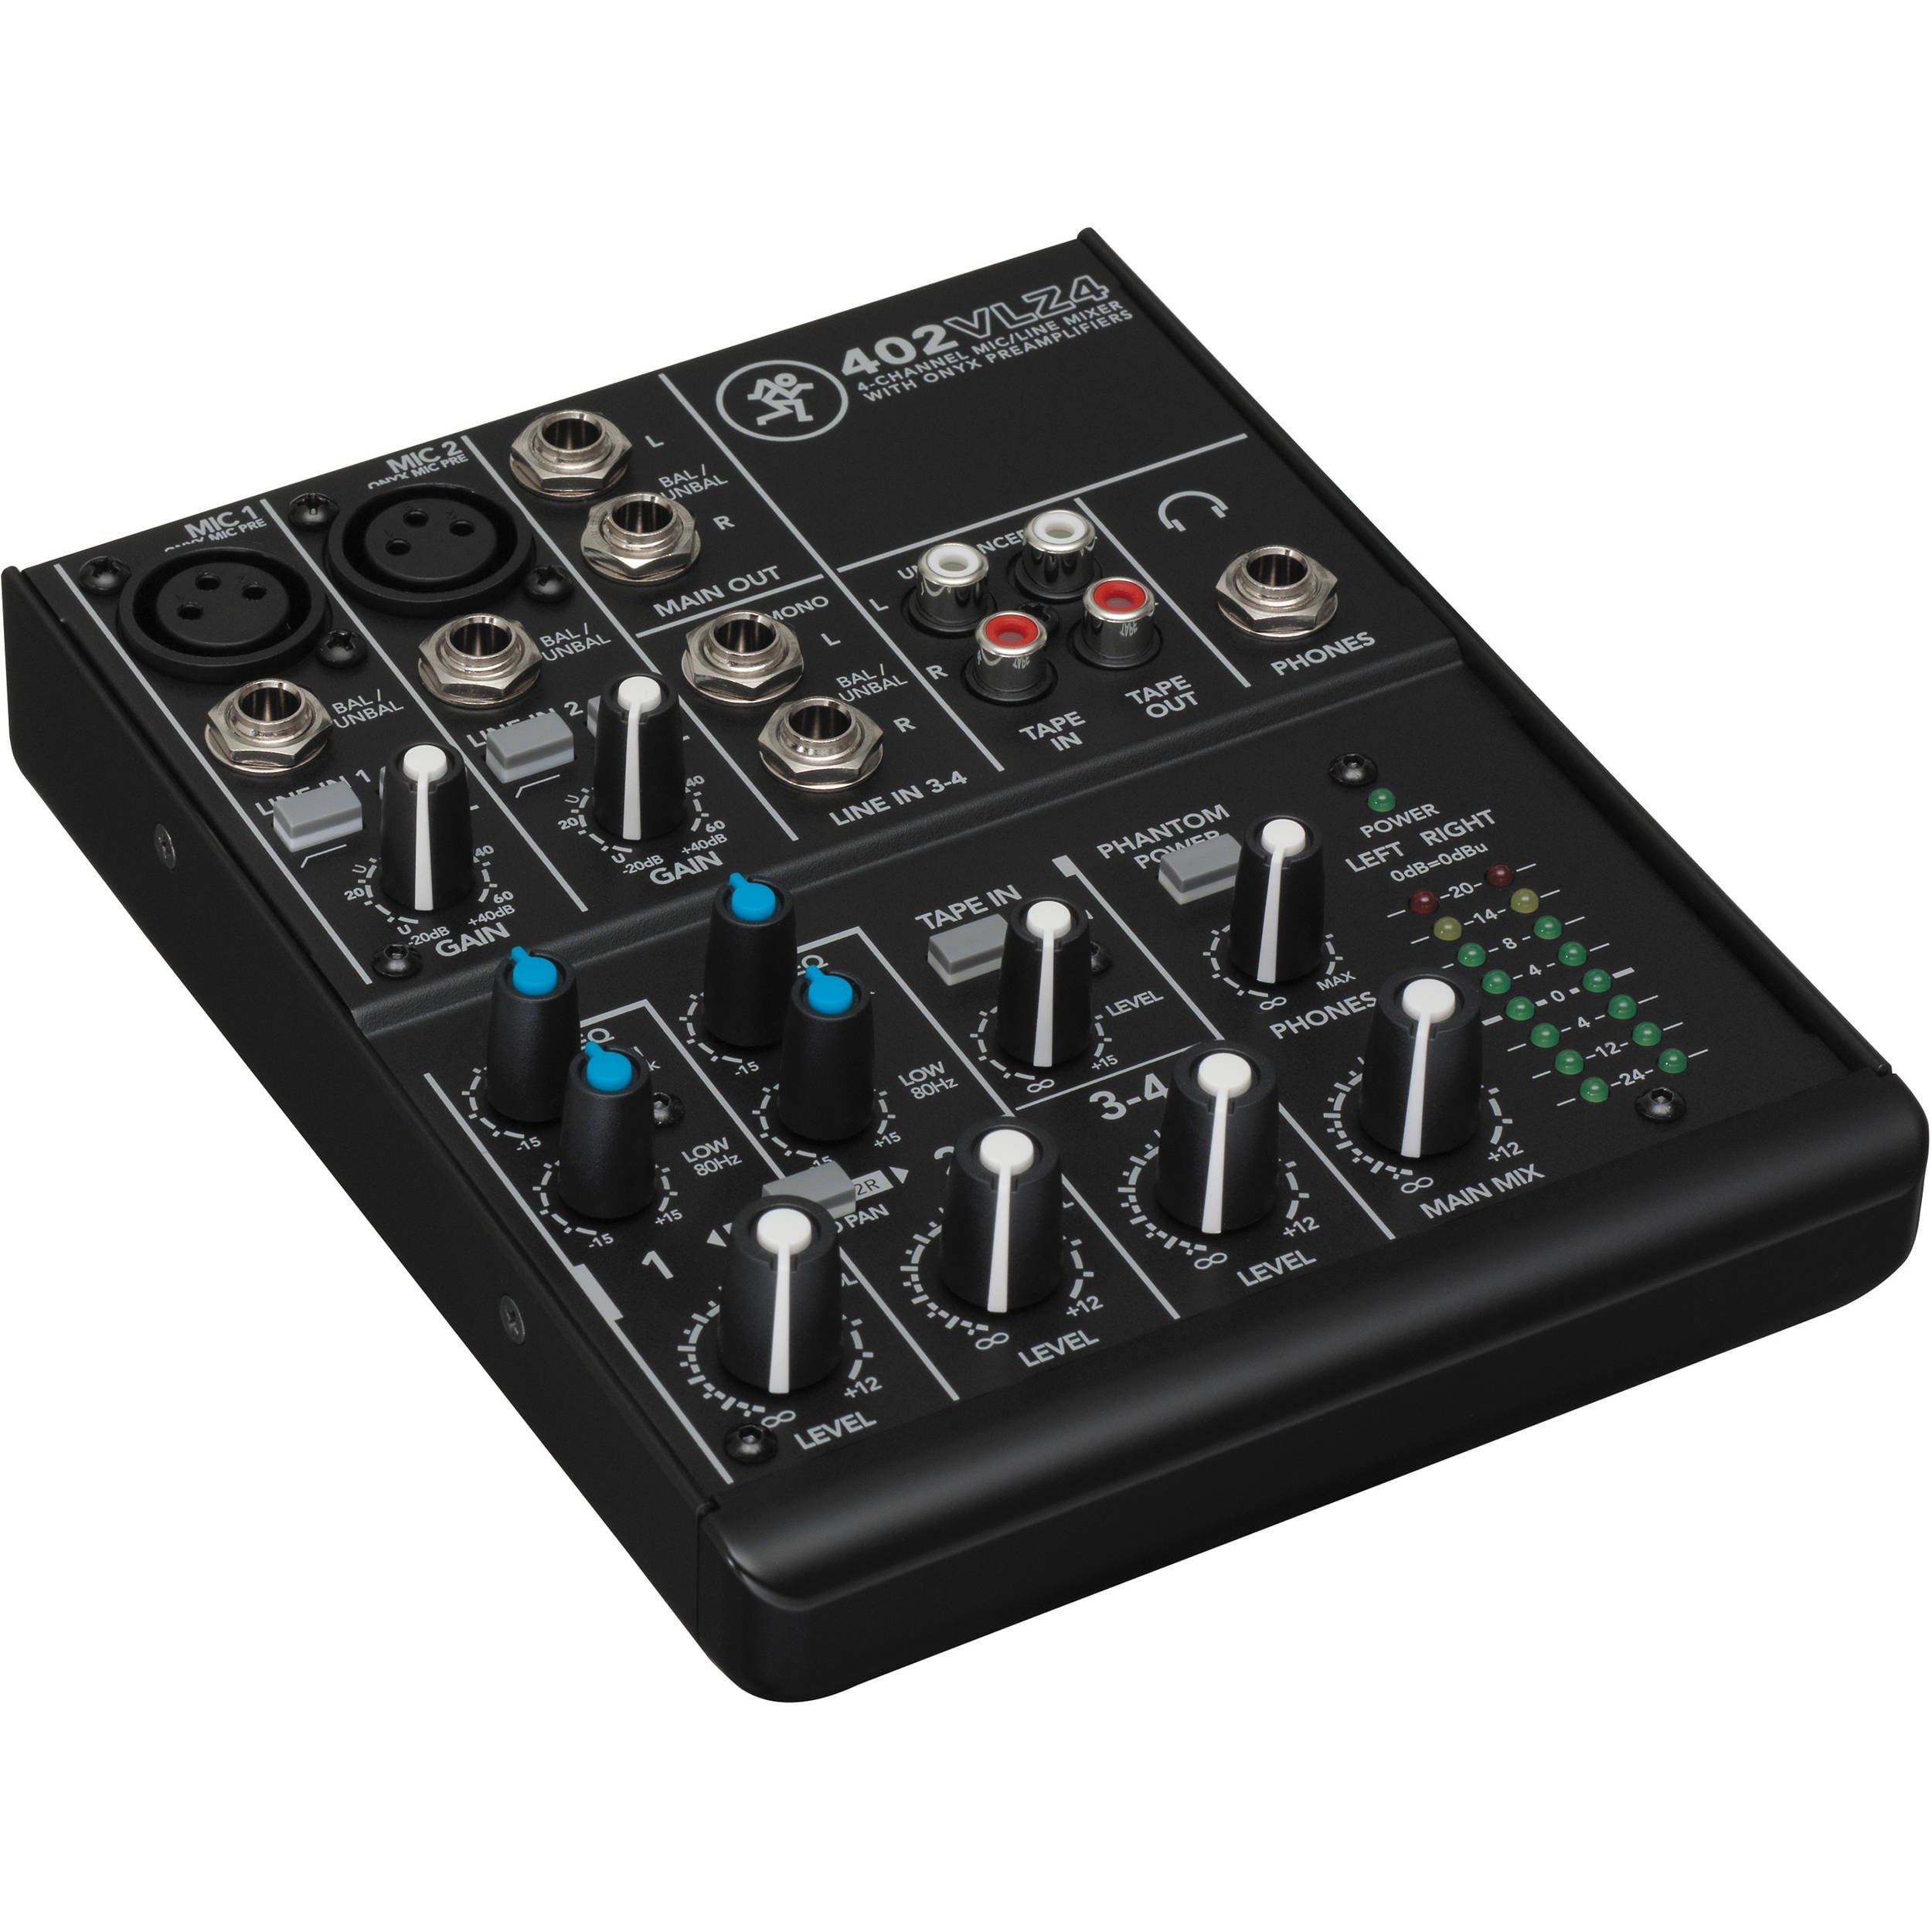 Mackie  402VLZ4 4-Channel Ultra-Compact Mixer $69.99 @ B&H Photo w/ Free Shipping